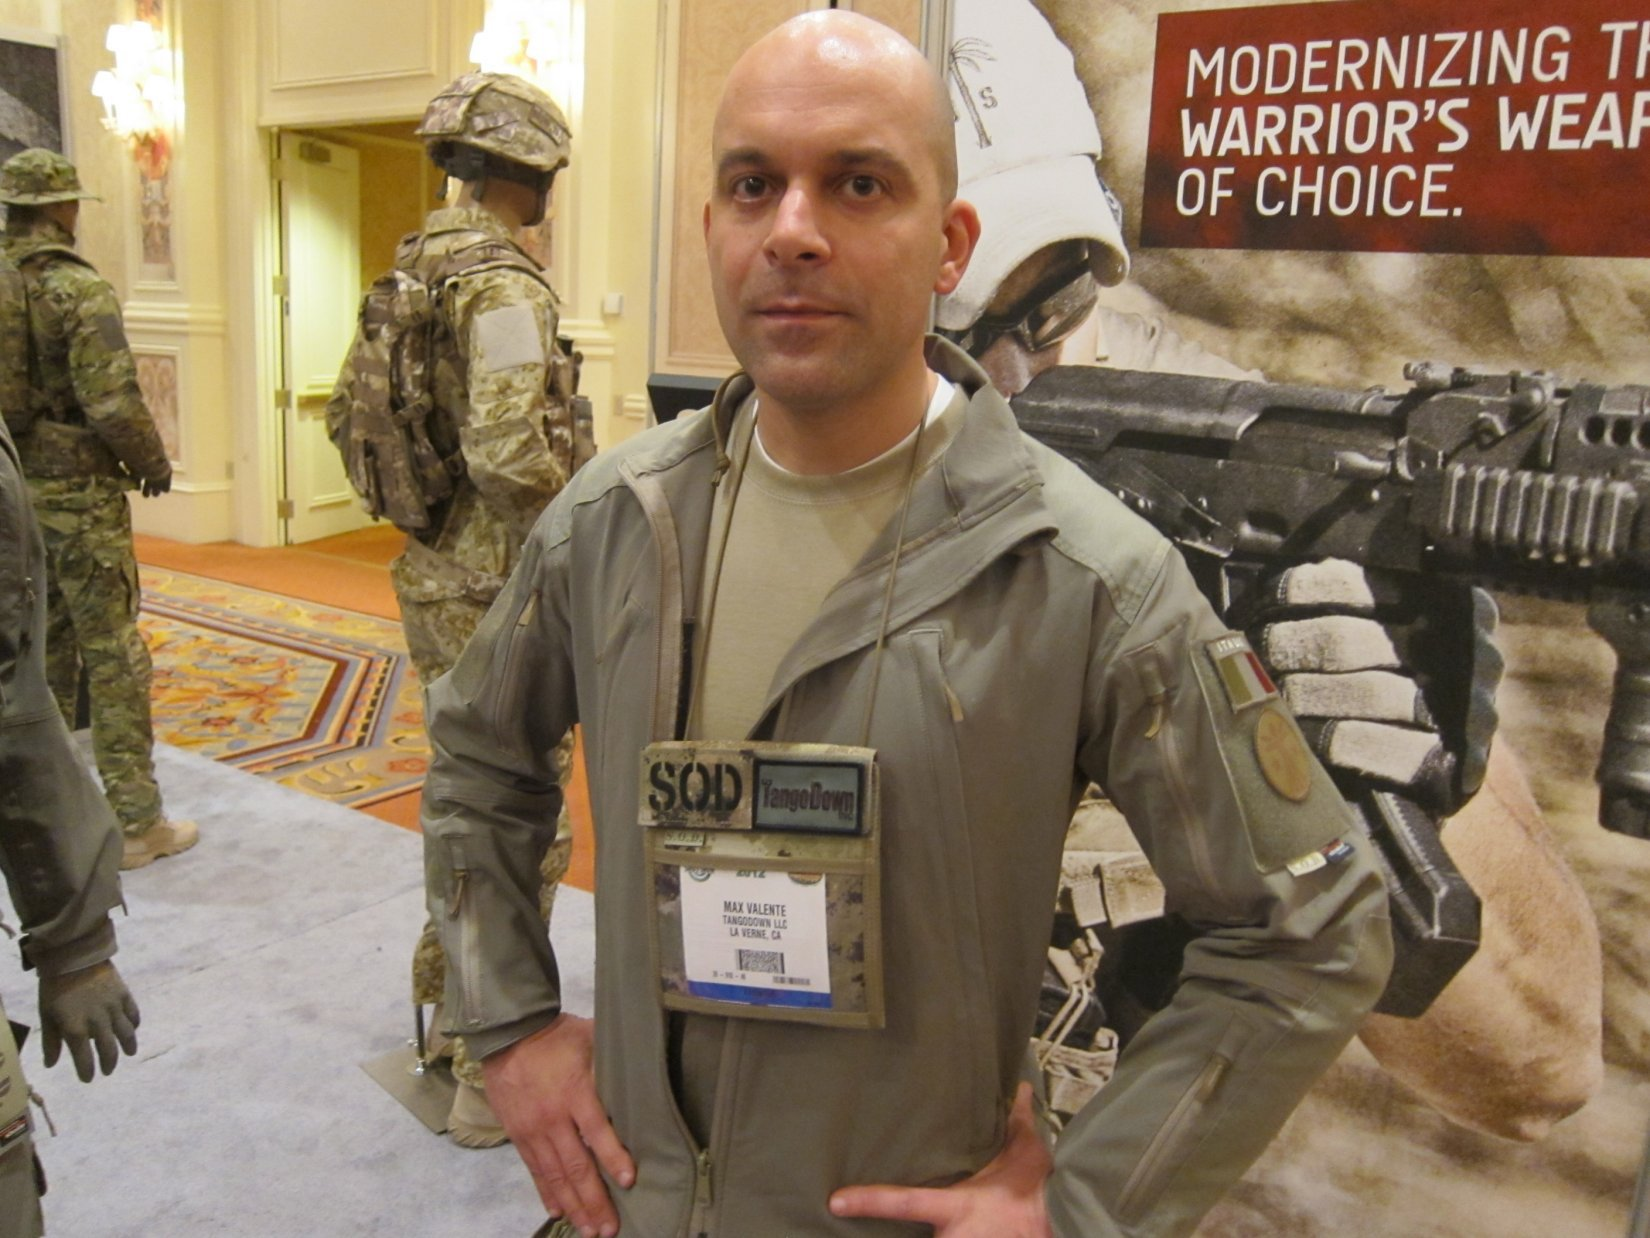 SOD Gear Special Operations Department Gear Max Valente Italian Tactical Combat Clothing TangoDown SHOT Show 2012 1 17 2012 DefenseReview.com DR 1 SOD Gear/SOD USA Stealth ADP Battle Jacket and Pants Made with Schoeller Performance Fabric: High Tech Combat Clothing for Military Special Operations Forces (SOF) and Civilian Tactical Shooters